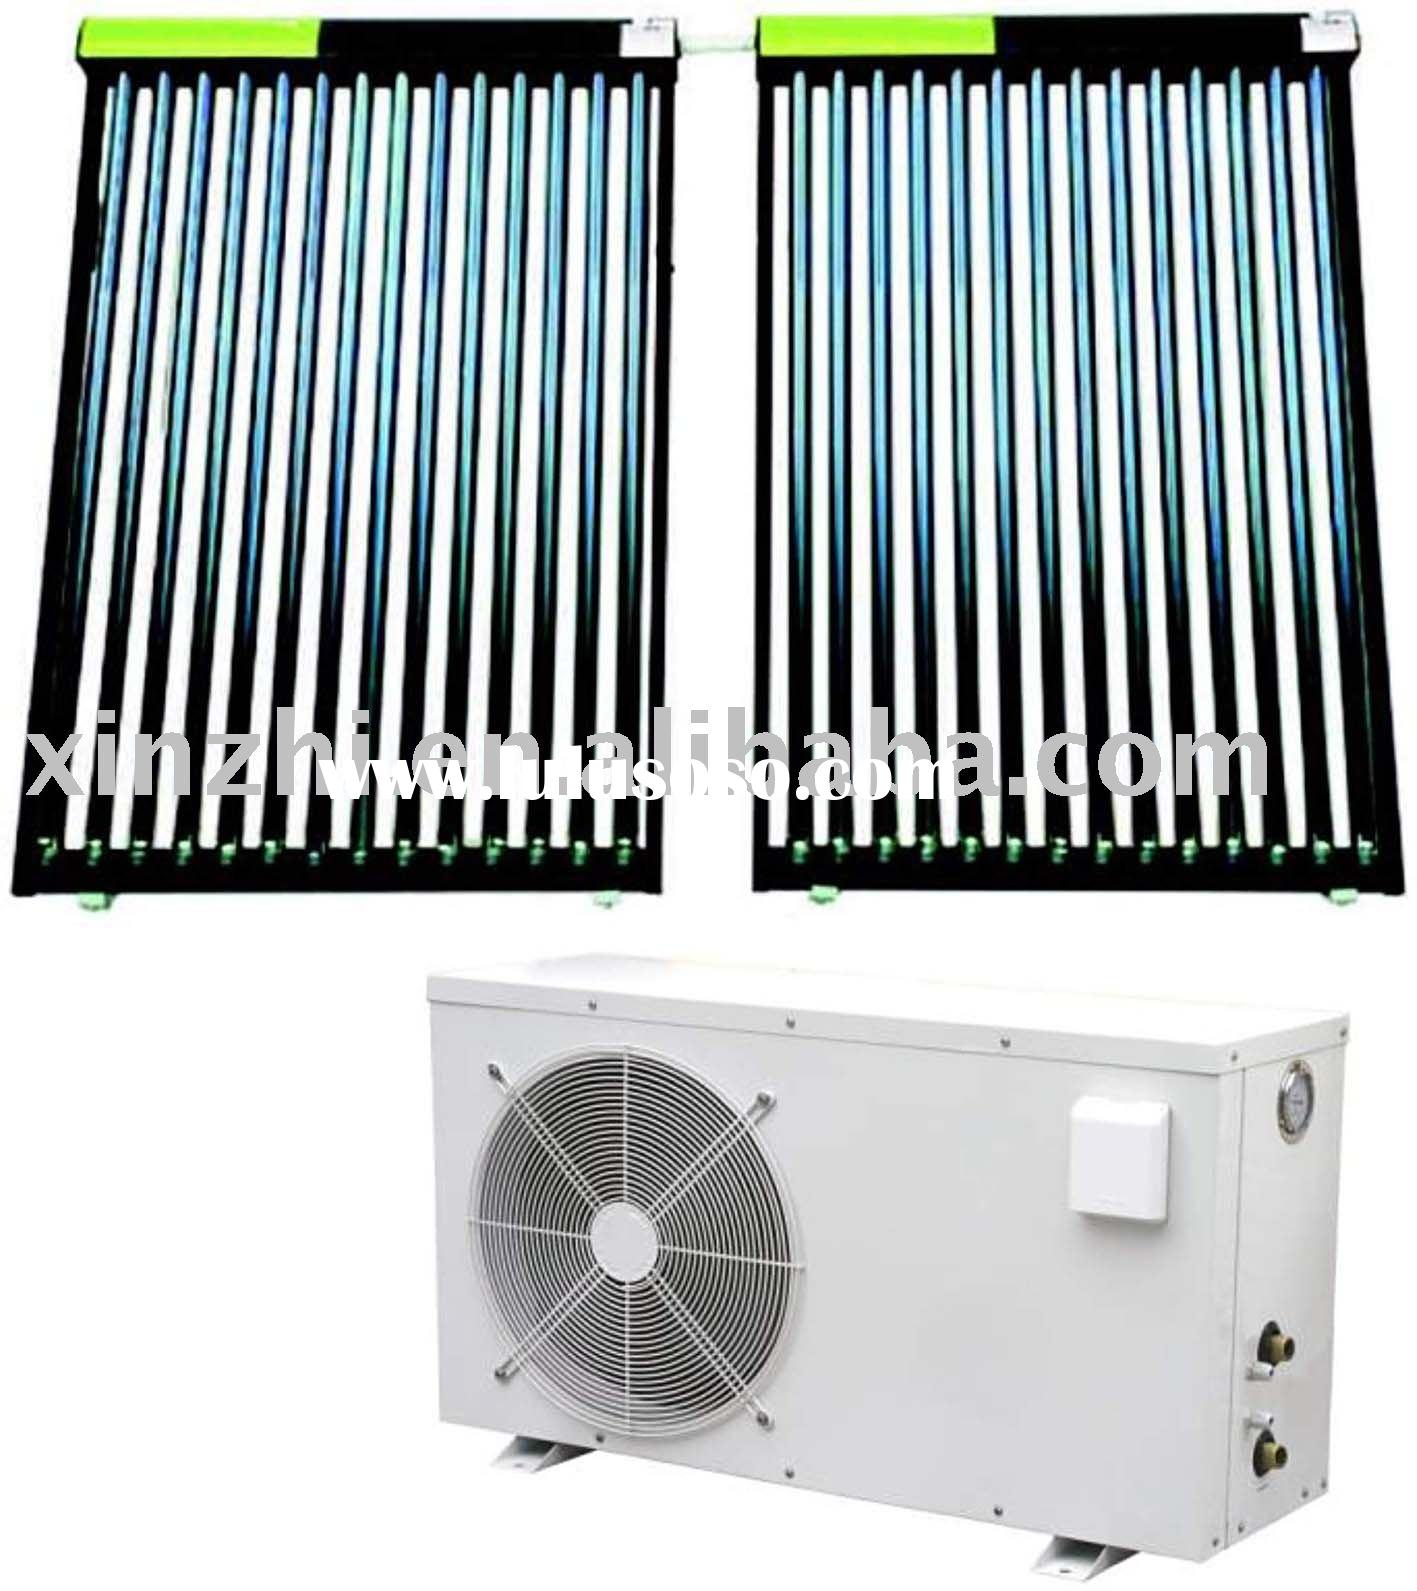 Heat Pump and Solar Water Heater